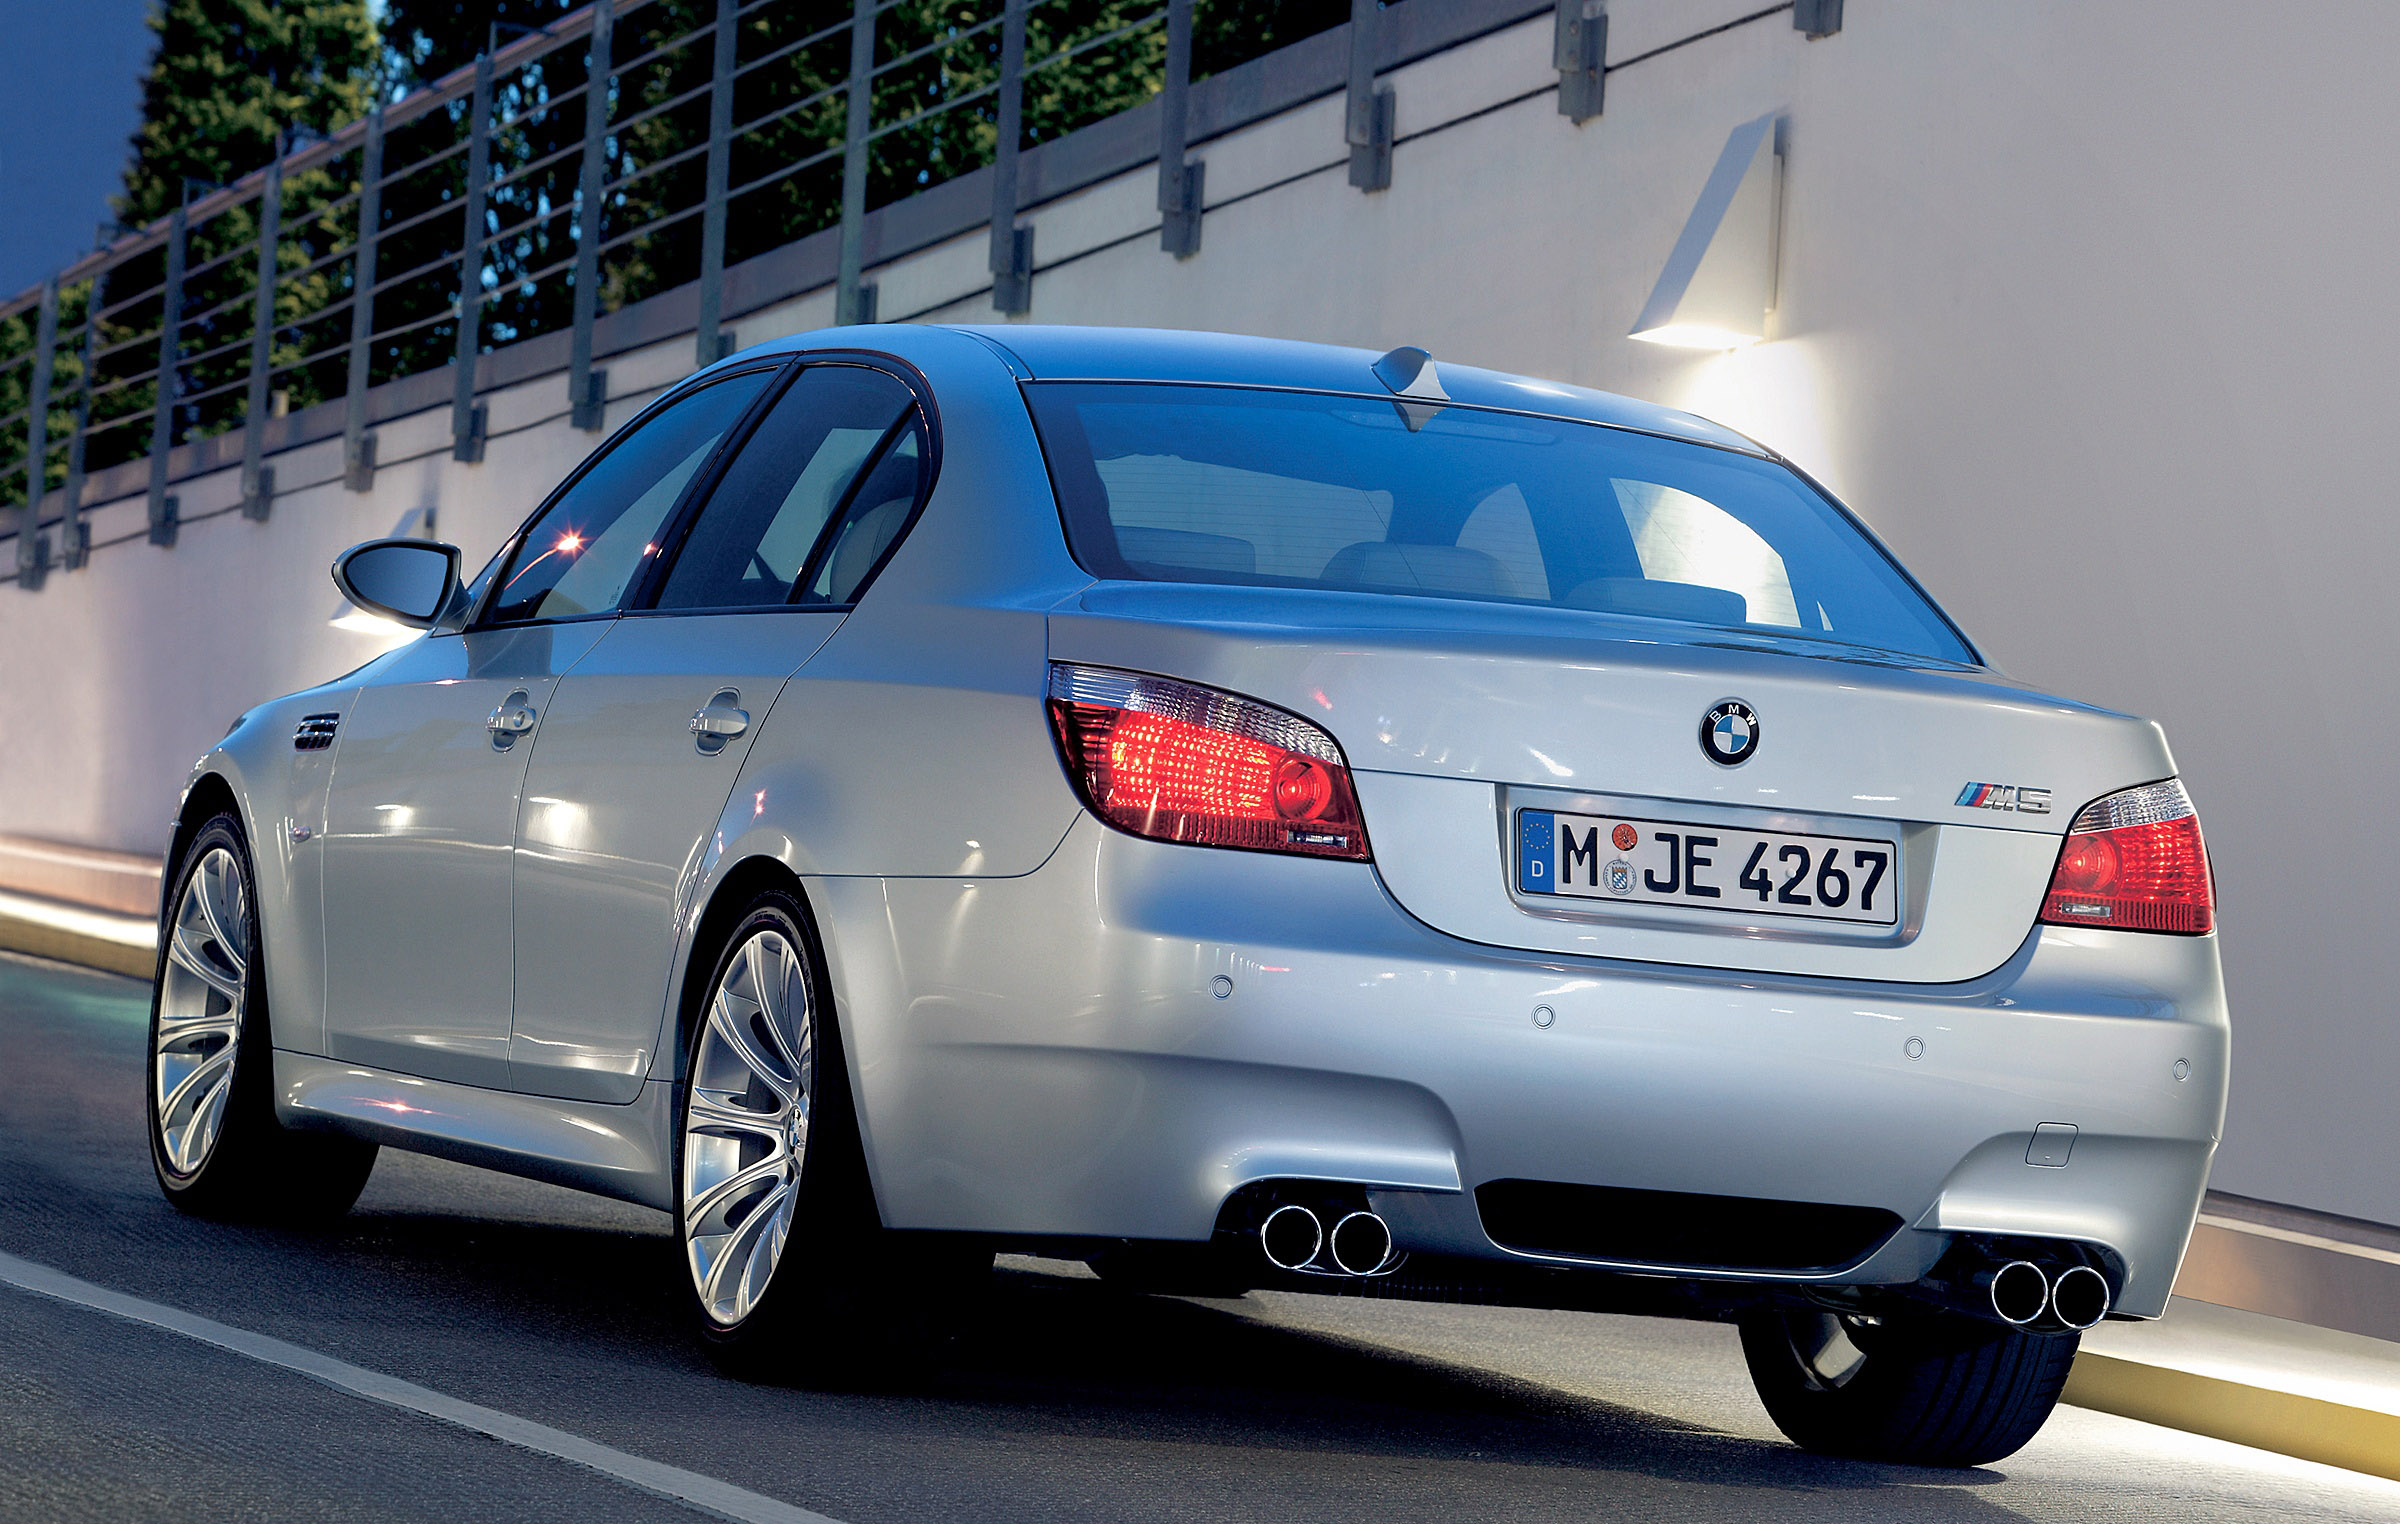 2005 Bmw E60 M5 The Last Naturally Aspirated M5